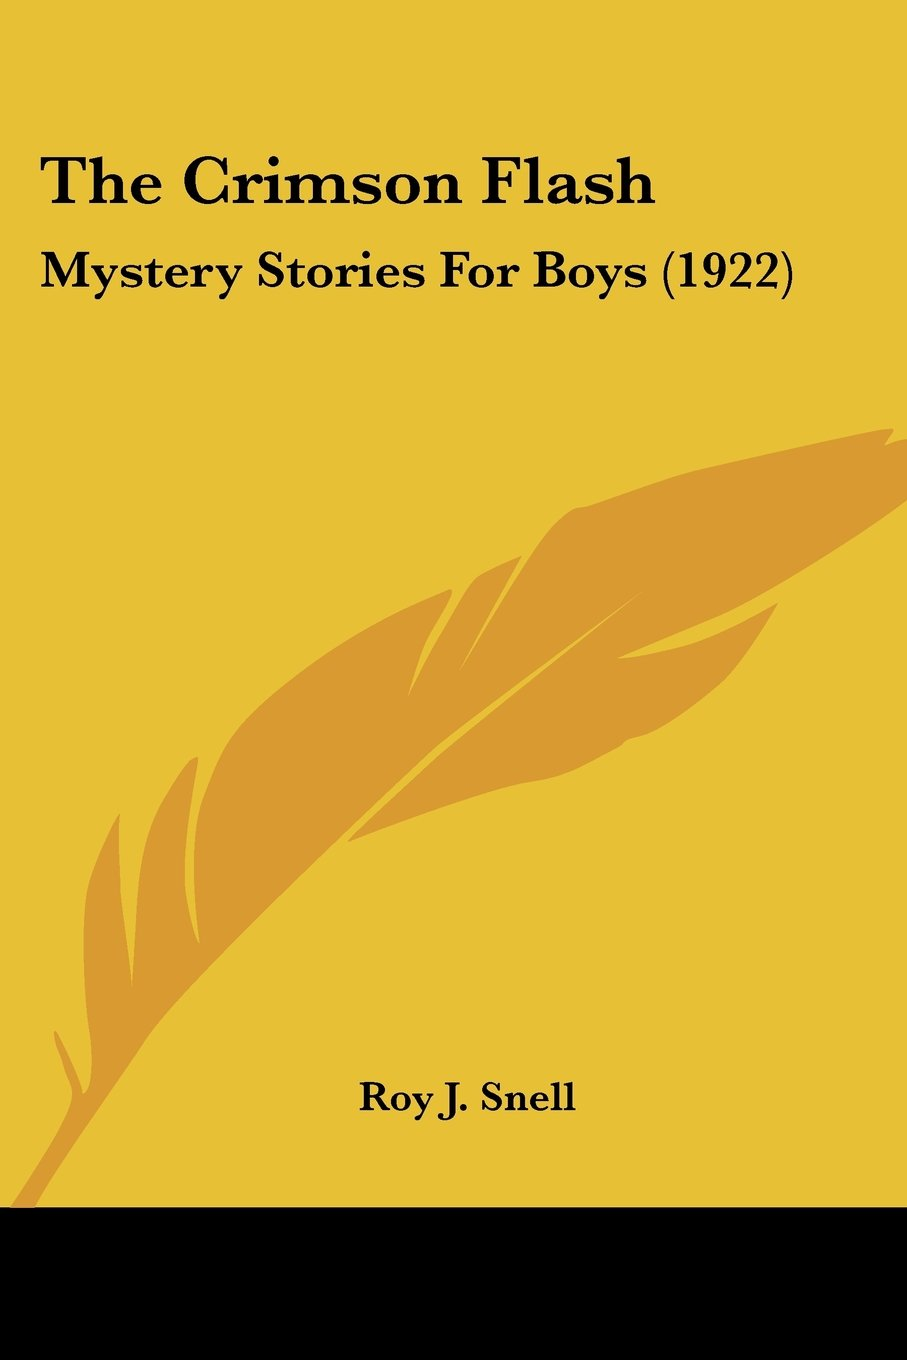 The Crimson Flash: Mystery Stories For Boys (1922) pdf